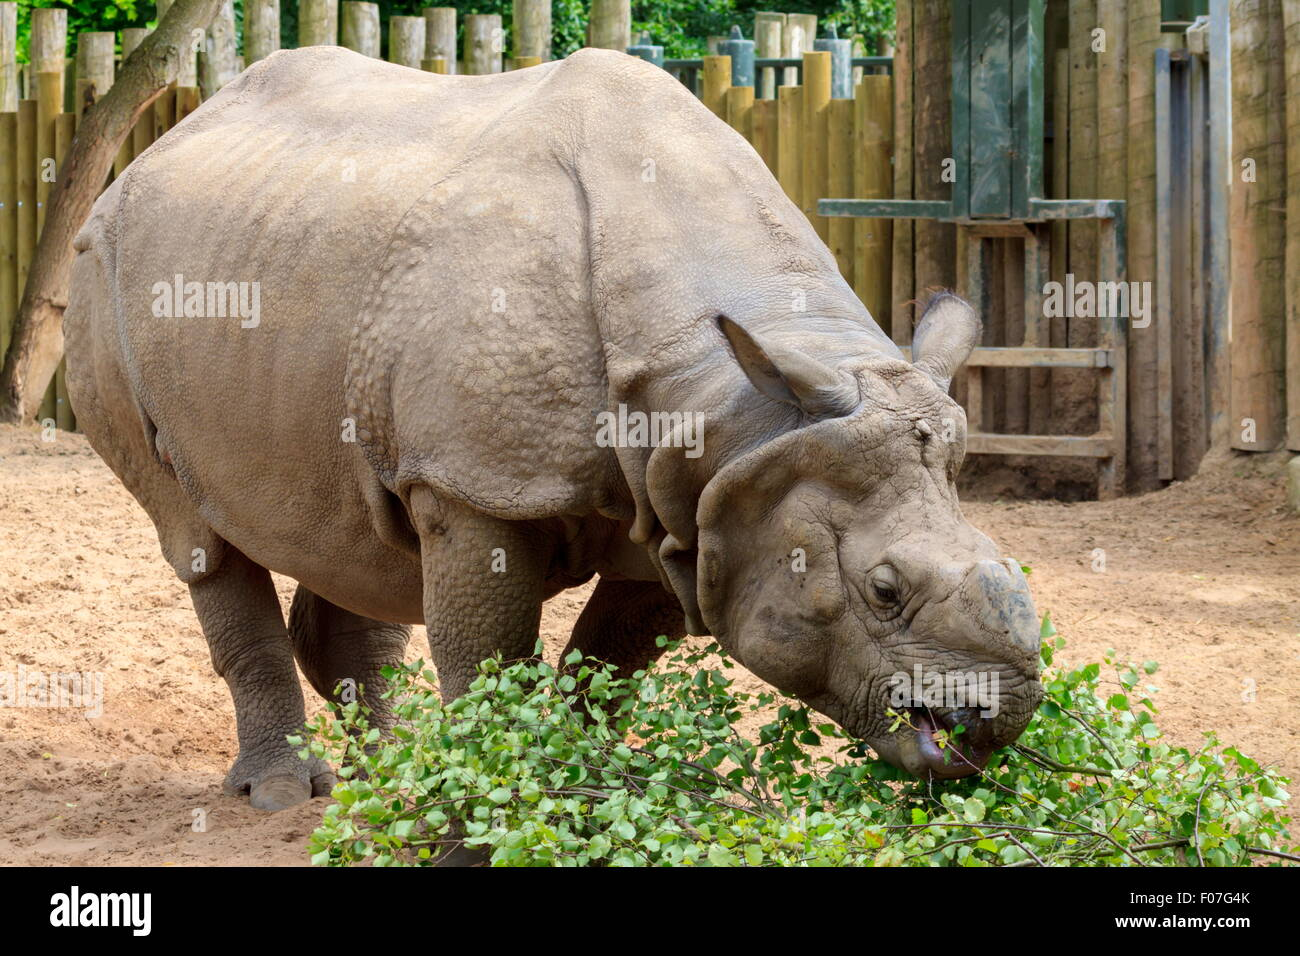 Greater One-horned Rhinoceros having a feed - Stock Image